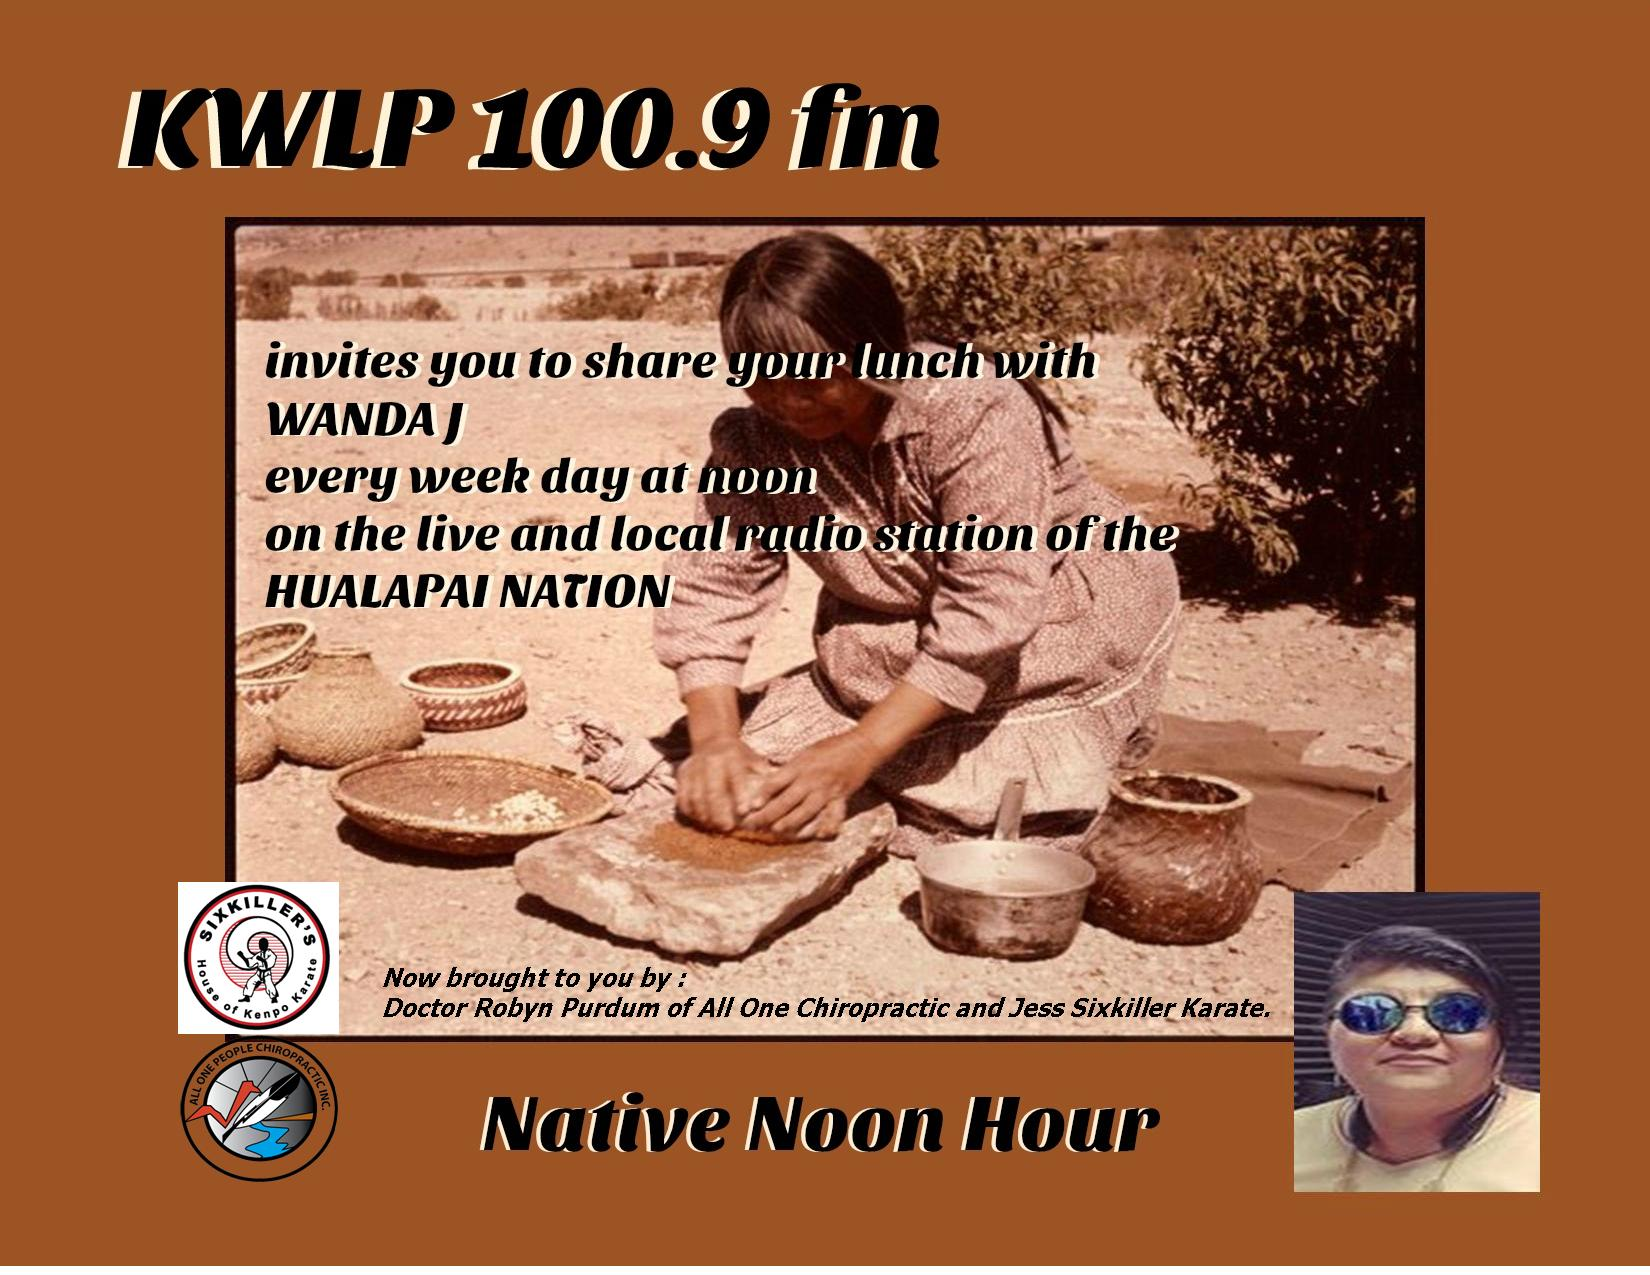 Native Noon Hour sponsored by Robyn and Jess